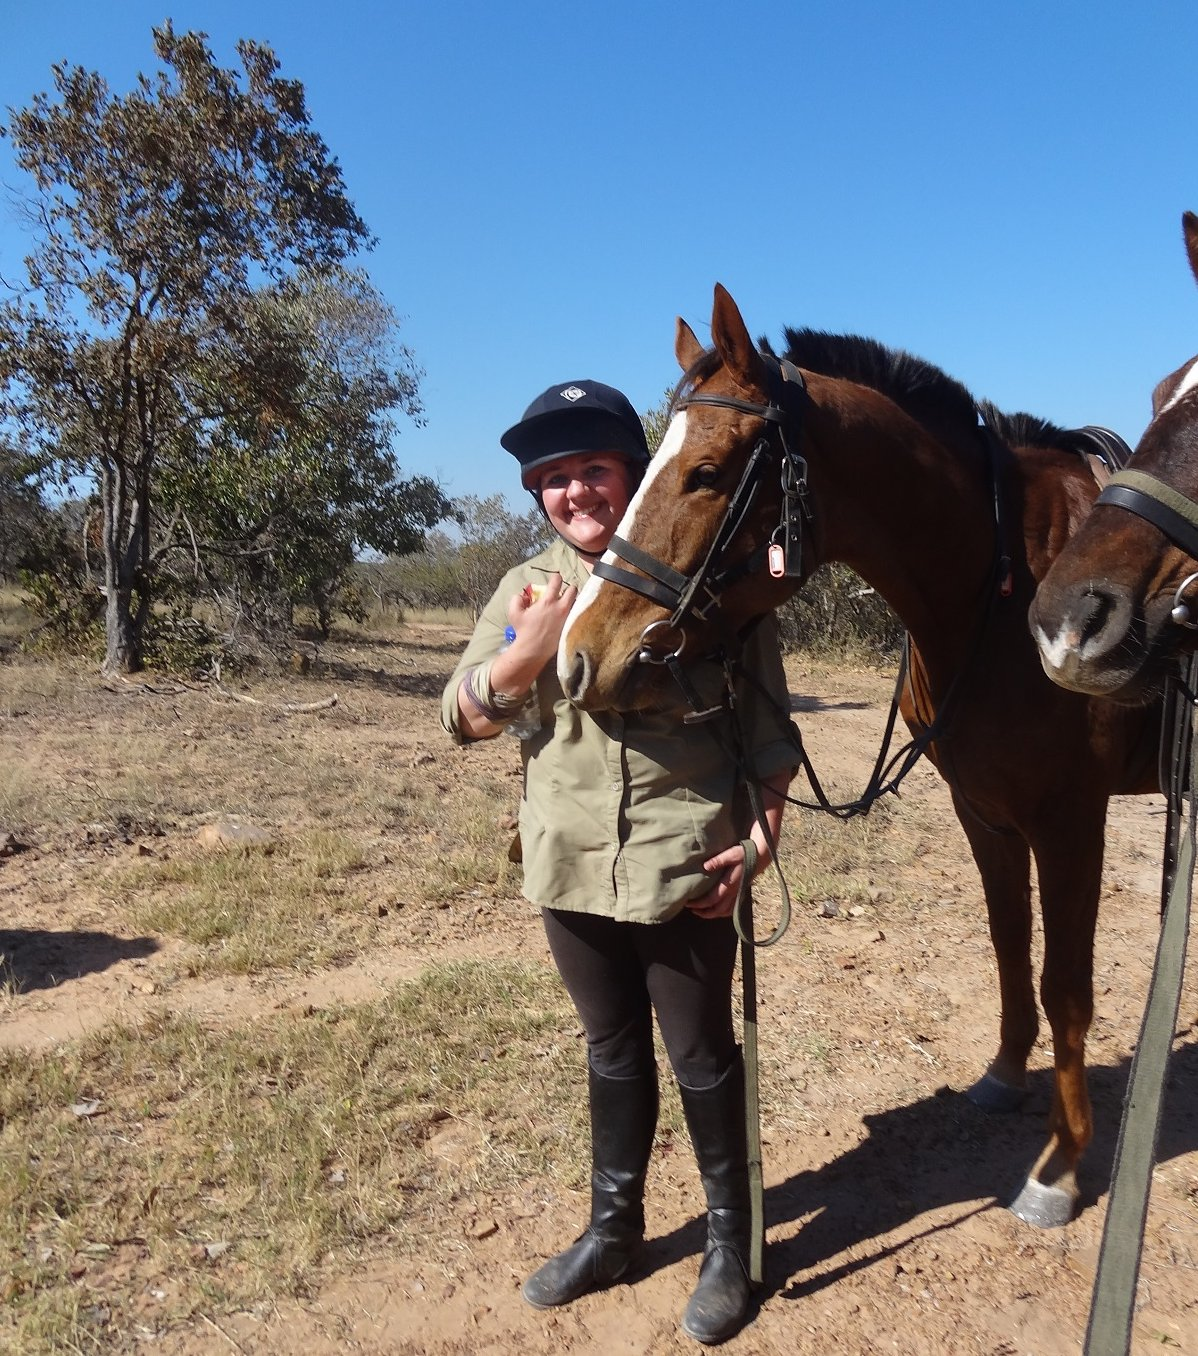 safari conservation, A Rare Opportunity To Assist With Safari Conservation, In The Saddle, In The Saddle